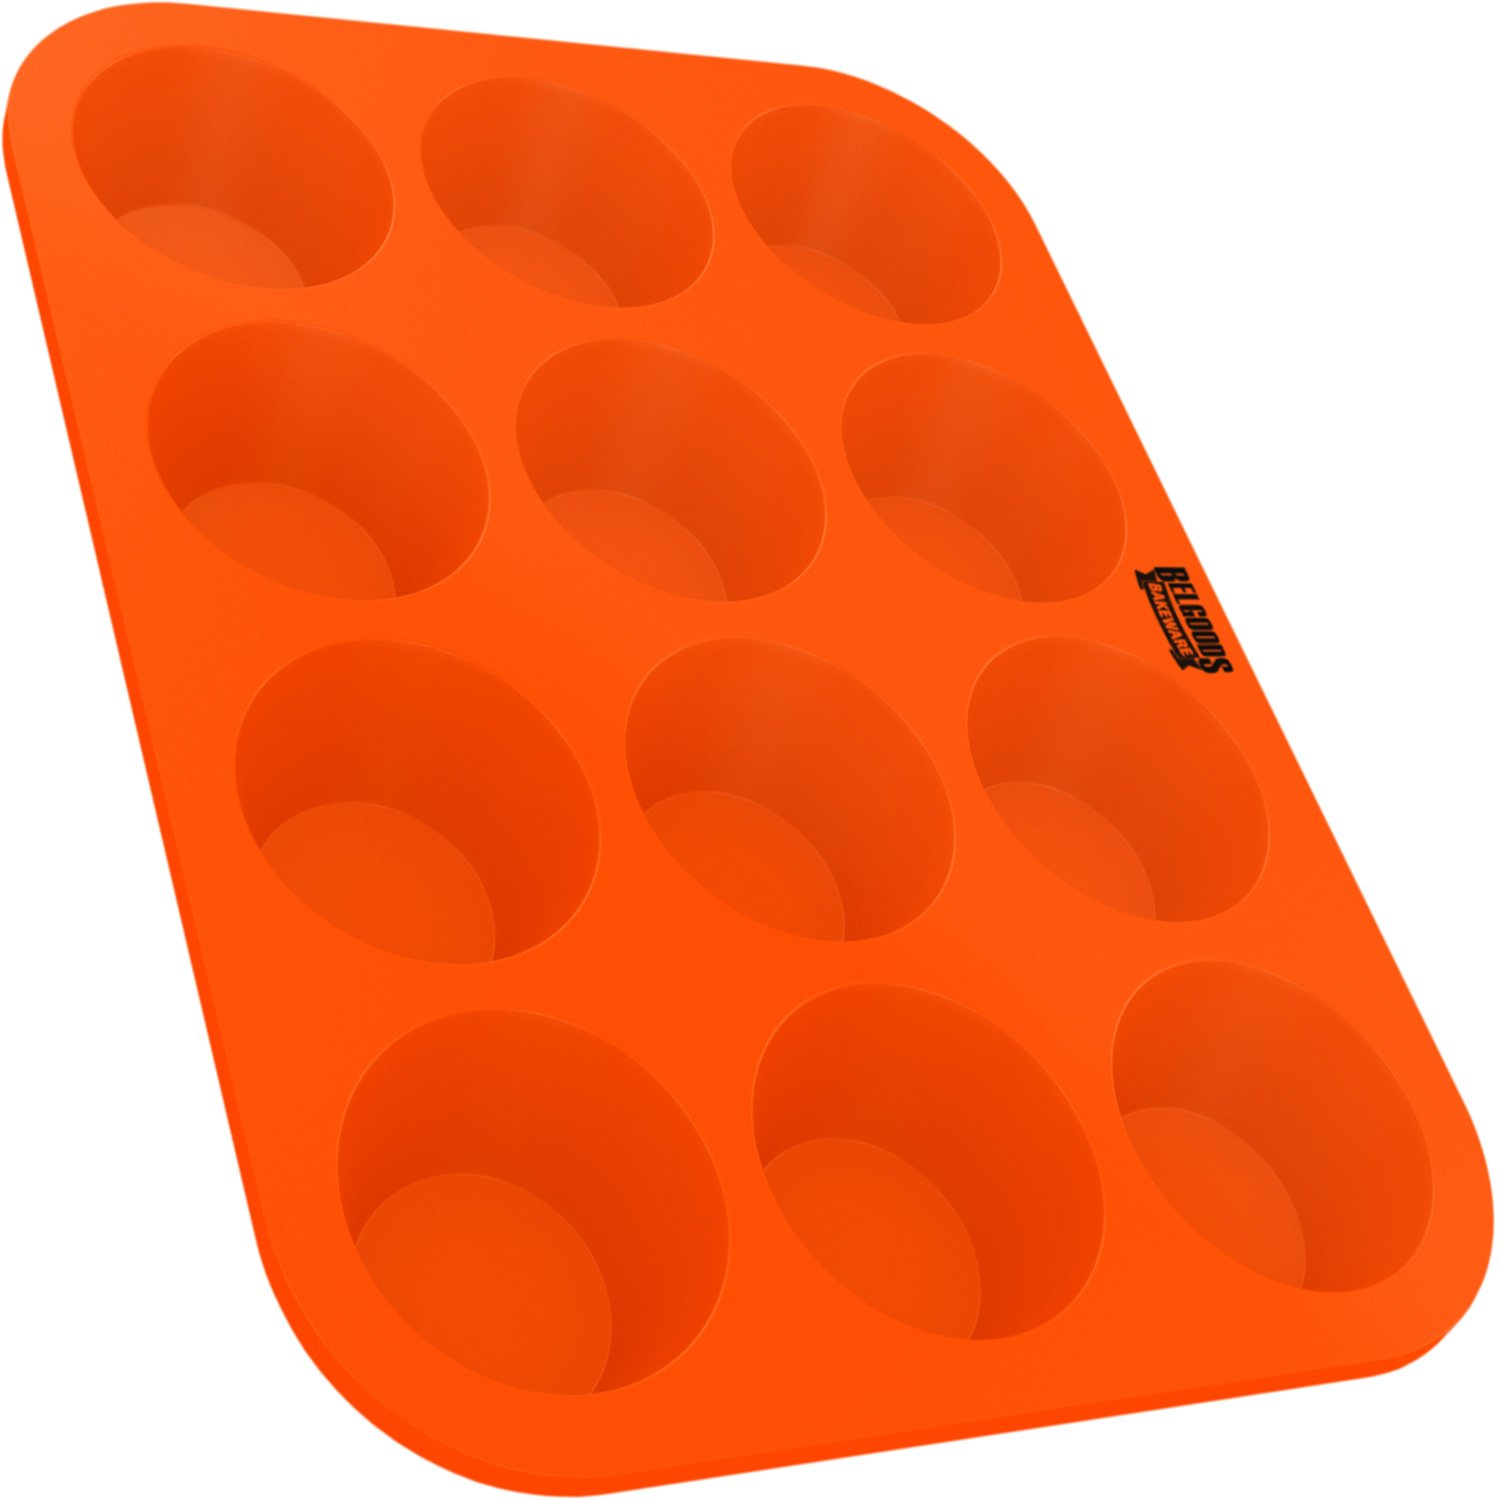 Silicone Muffin Cupcake Baking Pan Tray - Standard Size - 12 Cups - 100% Pure Food Grade Non-Stick Silicone - Orange - Bake Like a Professional